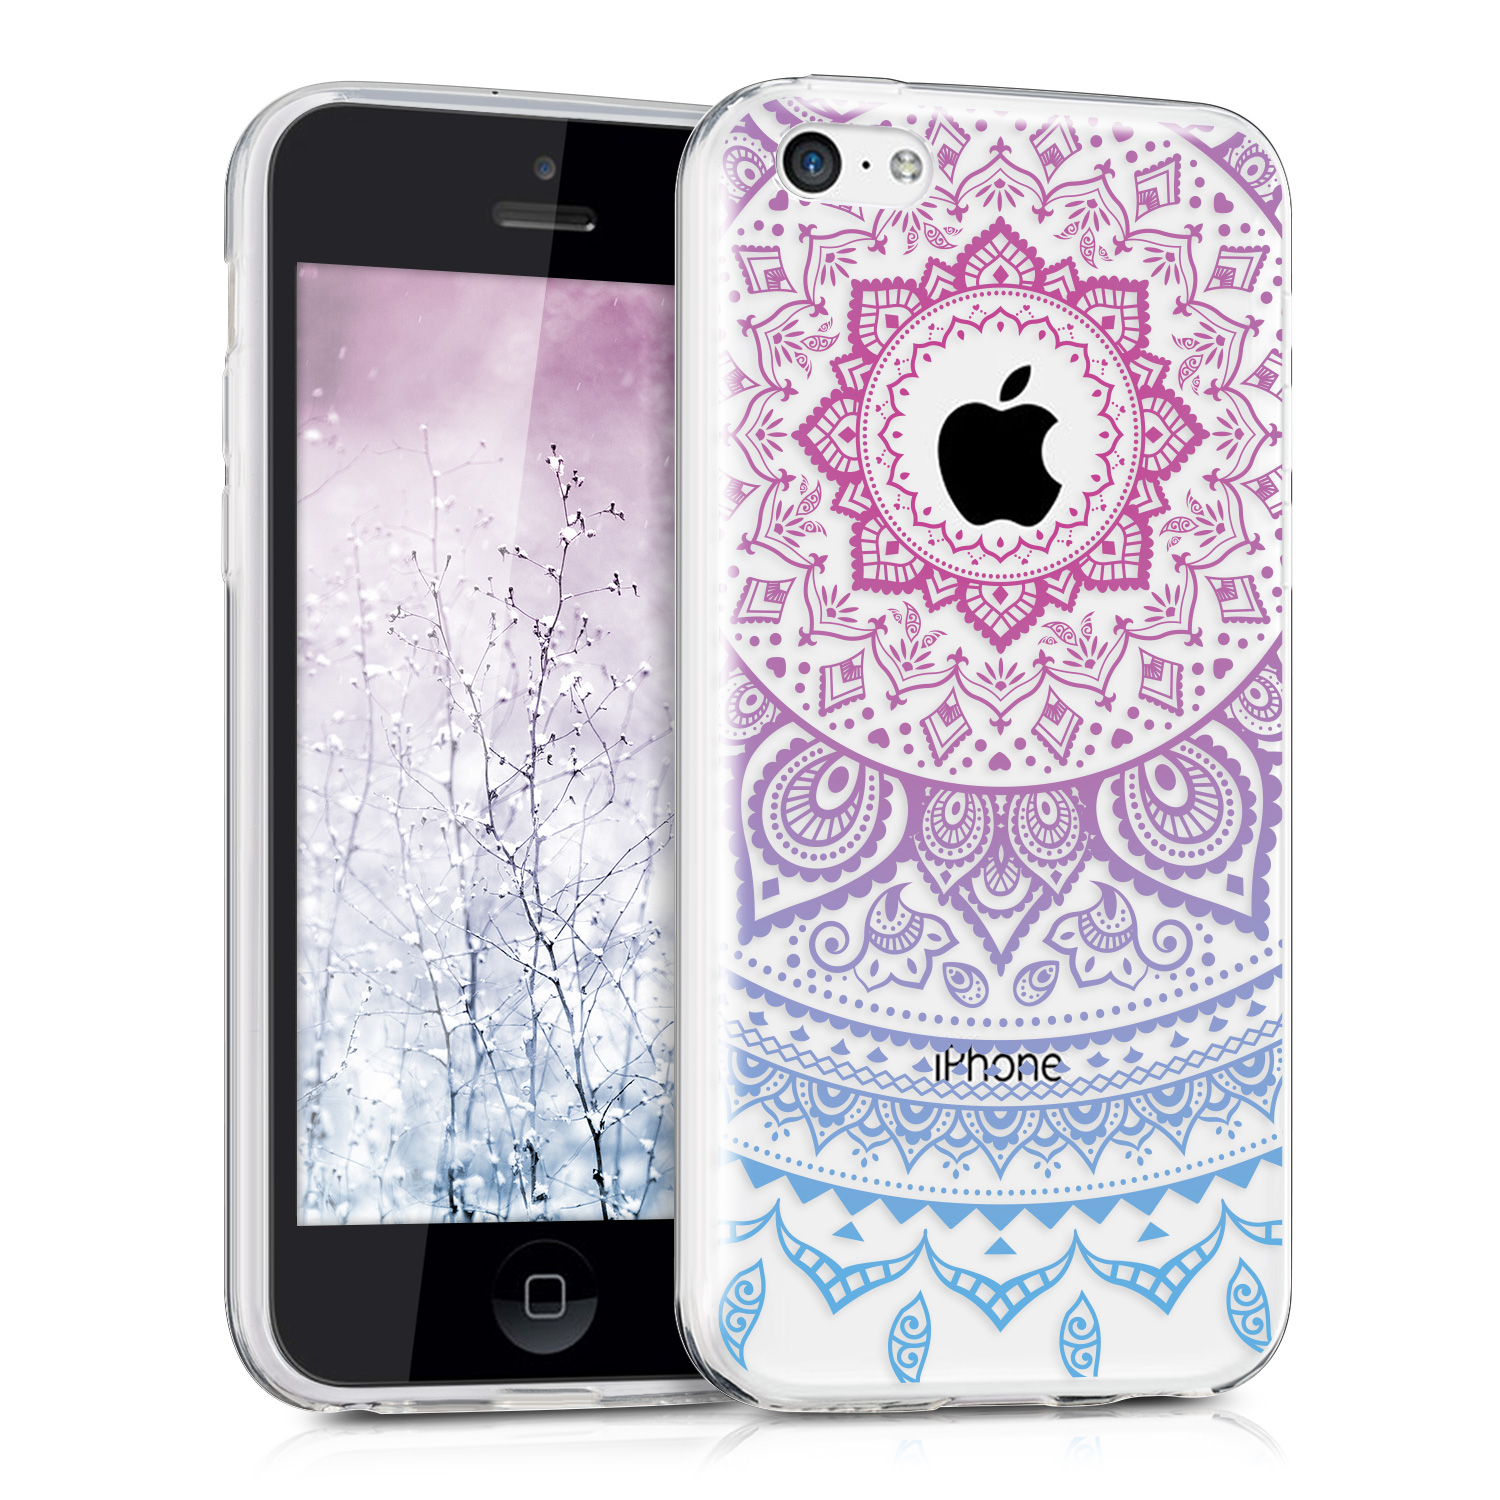 Silikonové pouzdro kwmobile Crystal pro mobil Apple iPhone 5C Pink blue indian sun